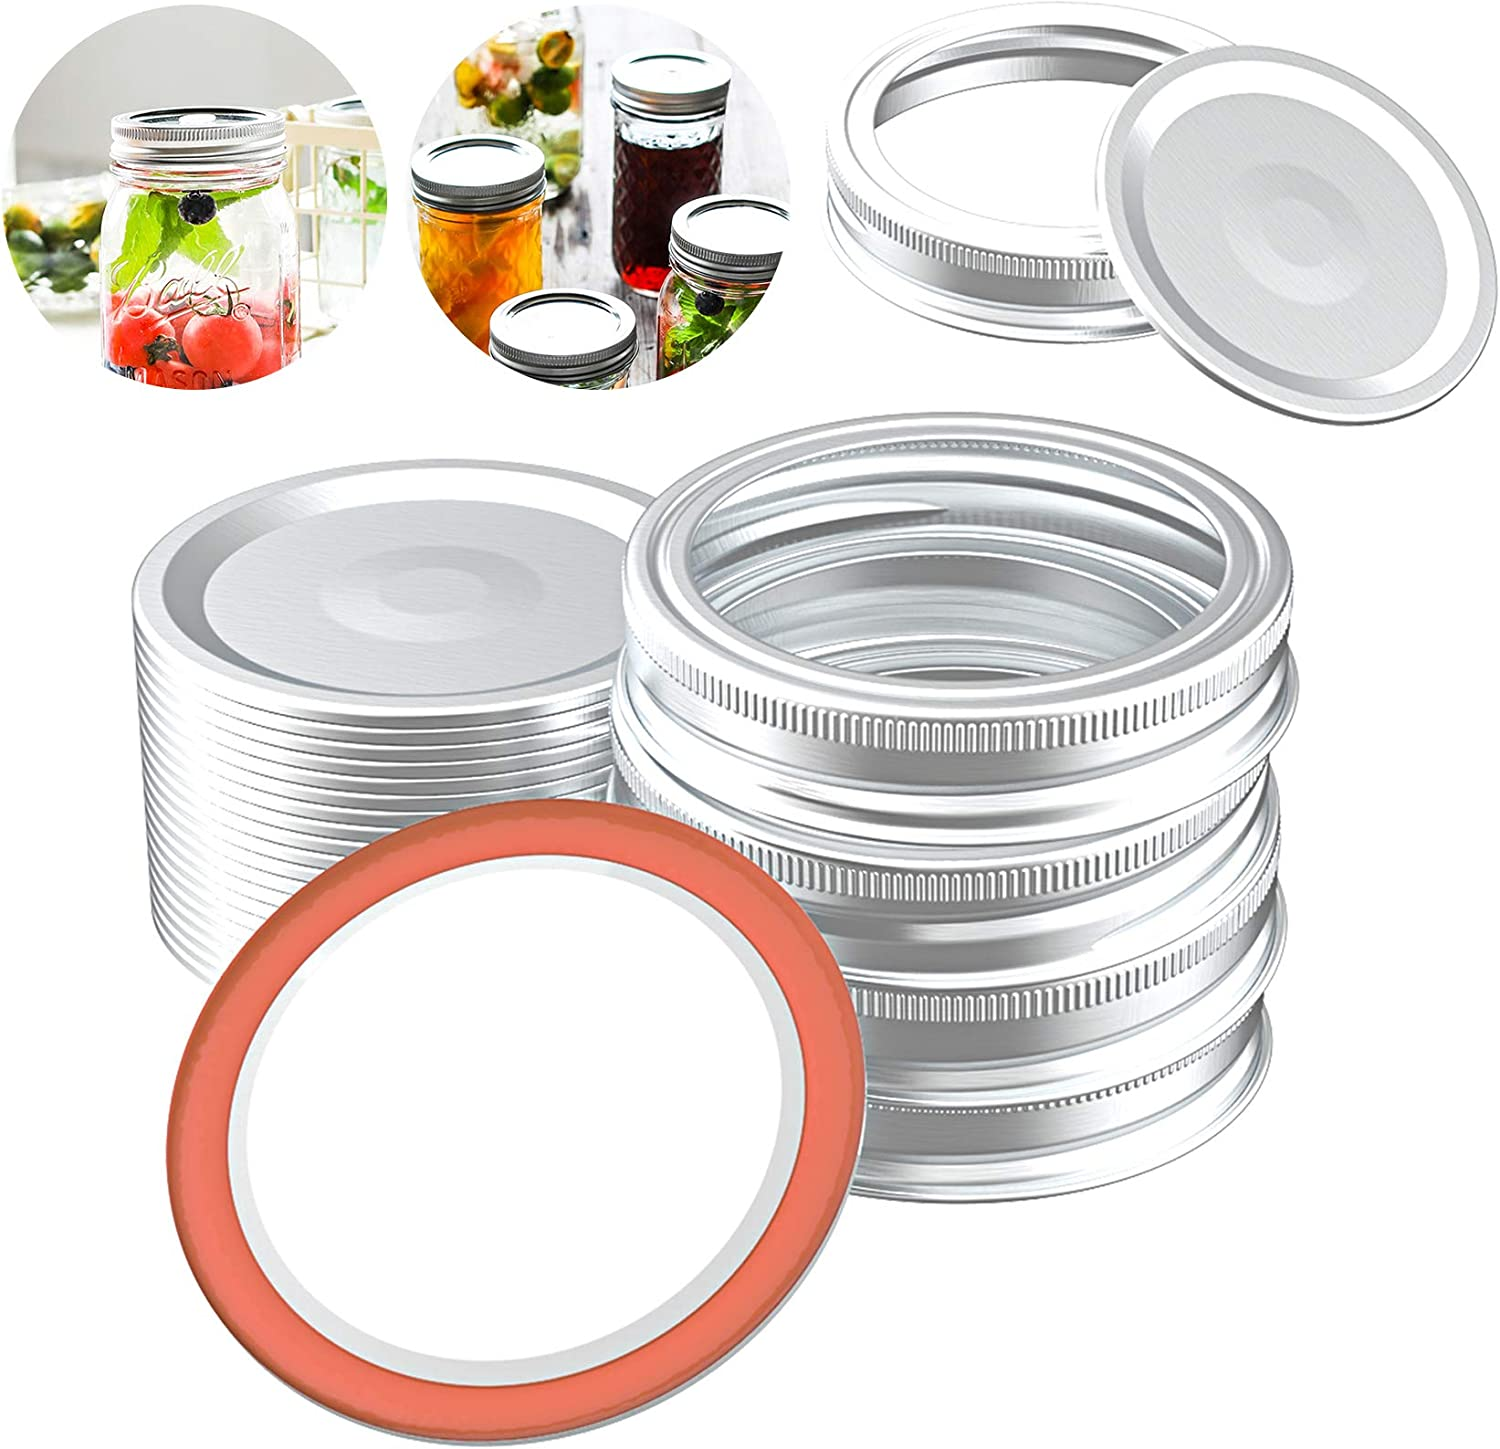 Trooer 20 Sets Canning Lids and Rings for Regular Mouth Mason Jar Lids, Split-type Canning Lids Food Grade Rust Resistant Metal Bands or Rings with Silicone Seals For Food Storage Kitchen Accessories